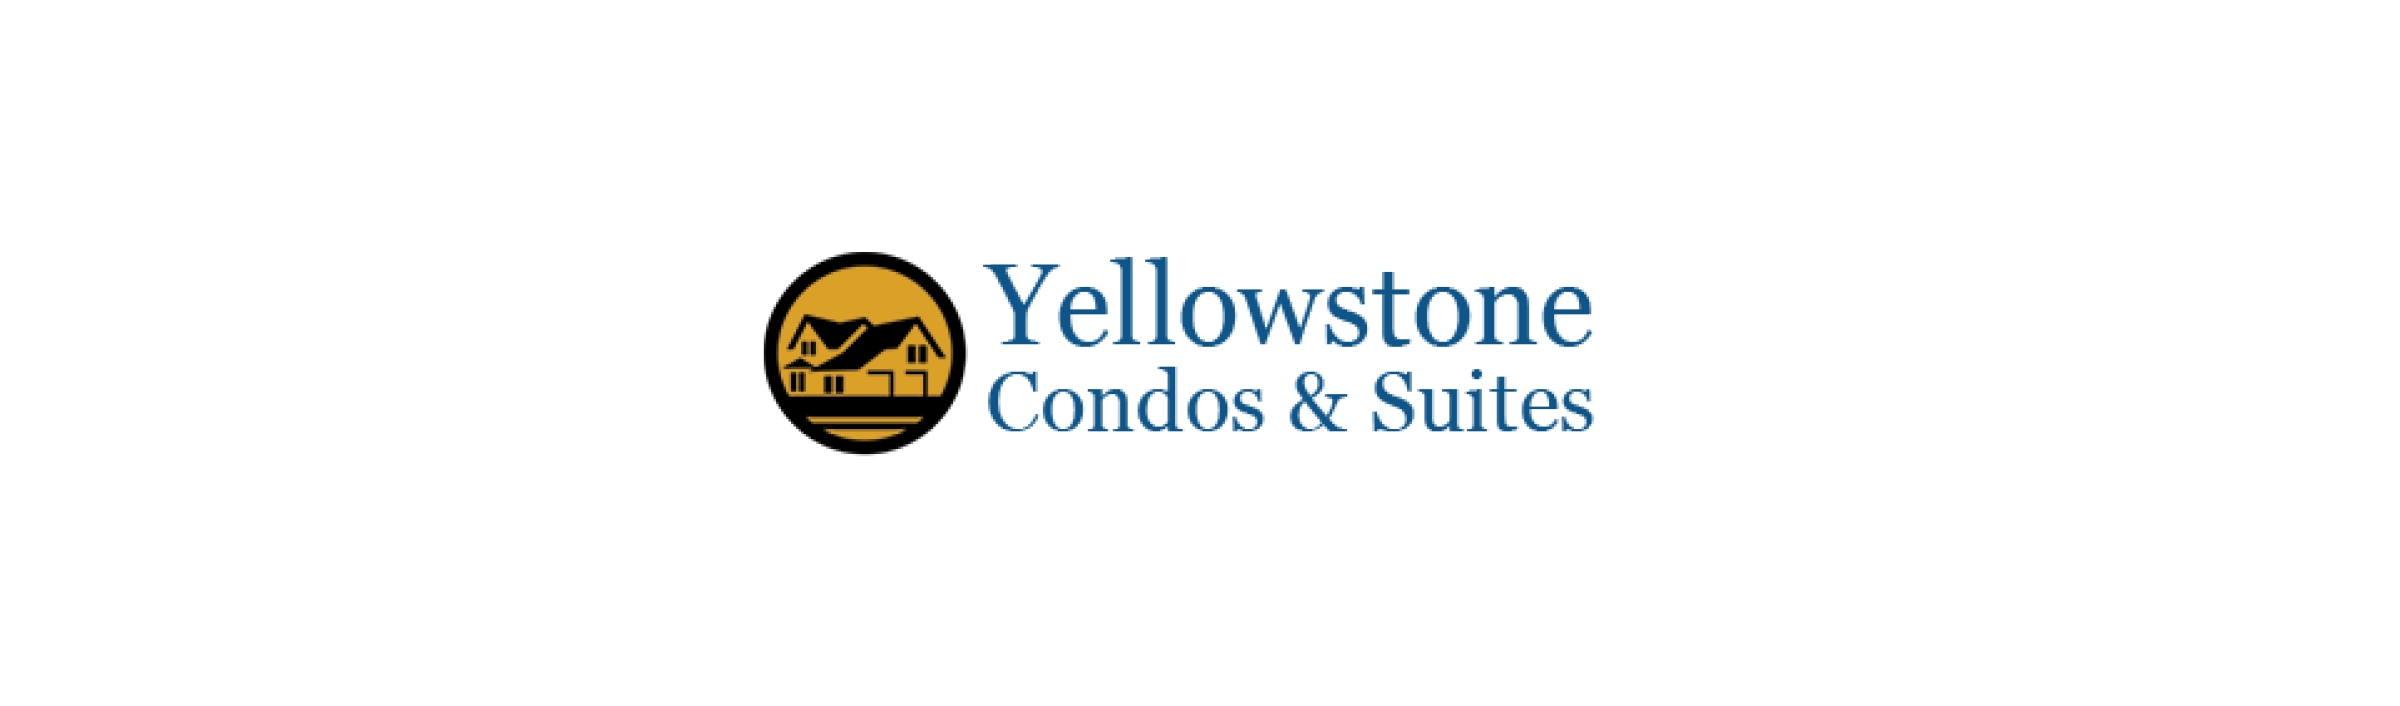 Yellowstone Condos & Suites